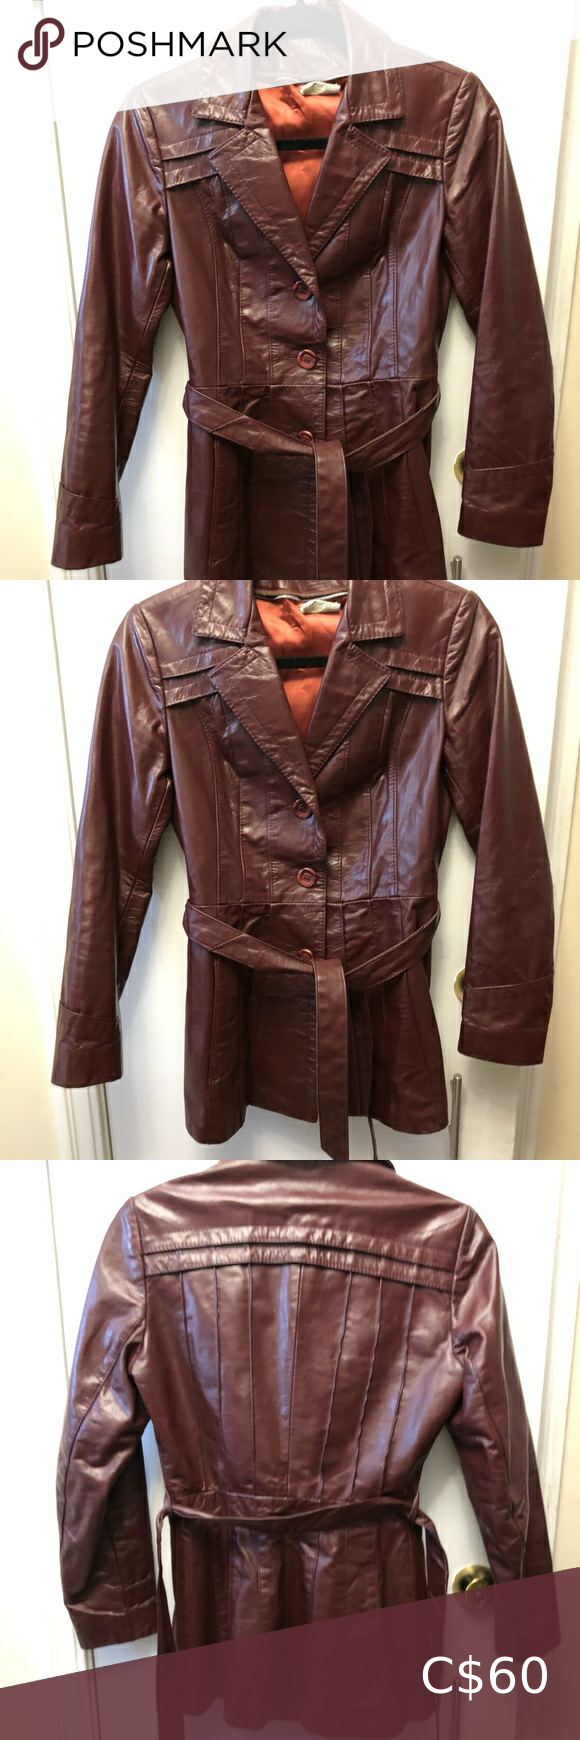 Womens Vintage Burgundy leather jacket with belt. in 2020